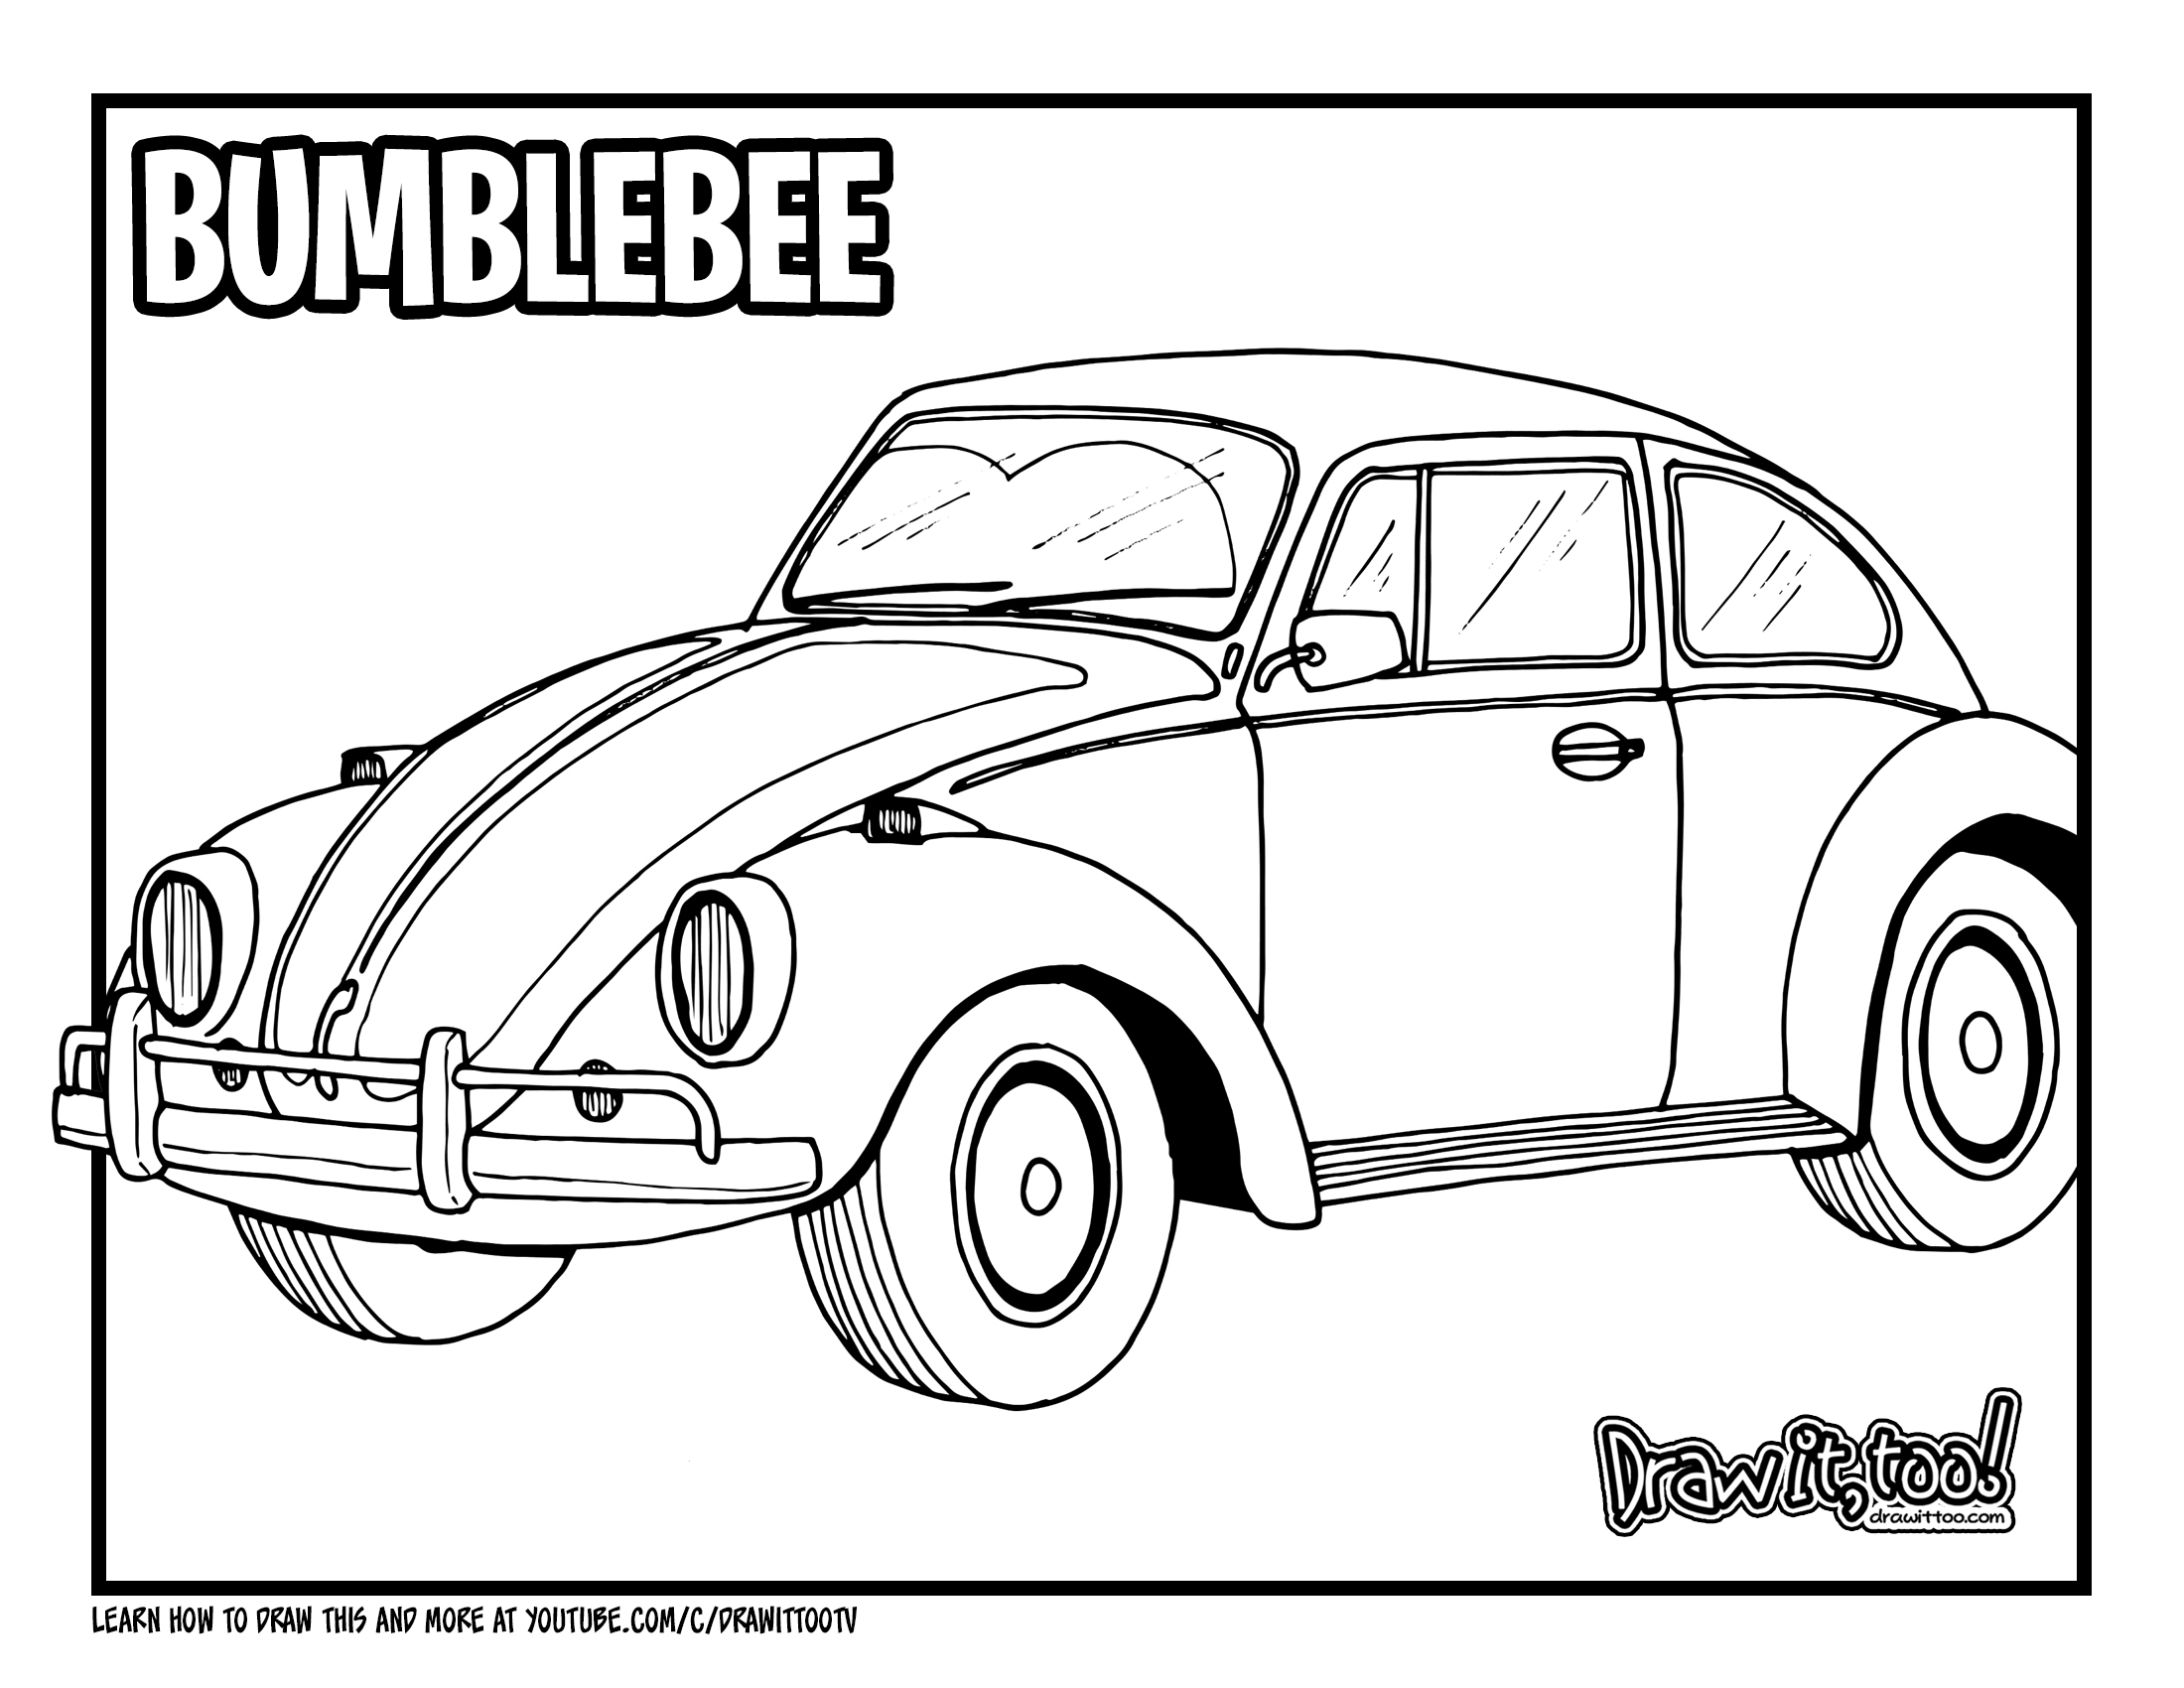 How to Draw BUMBLEBEE VEHICLE MODE (VW BEETLE) Drawing